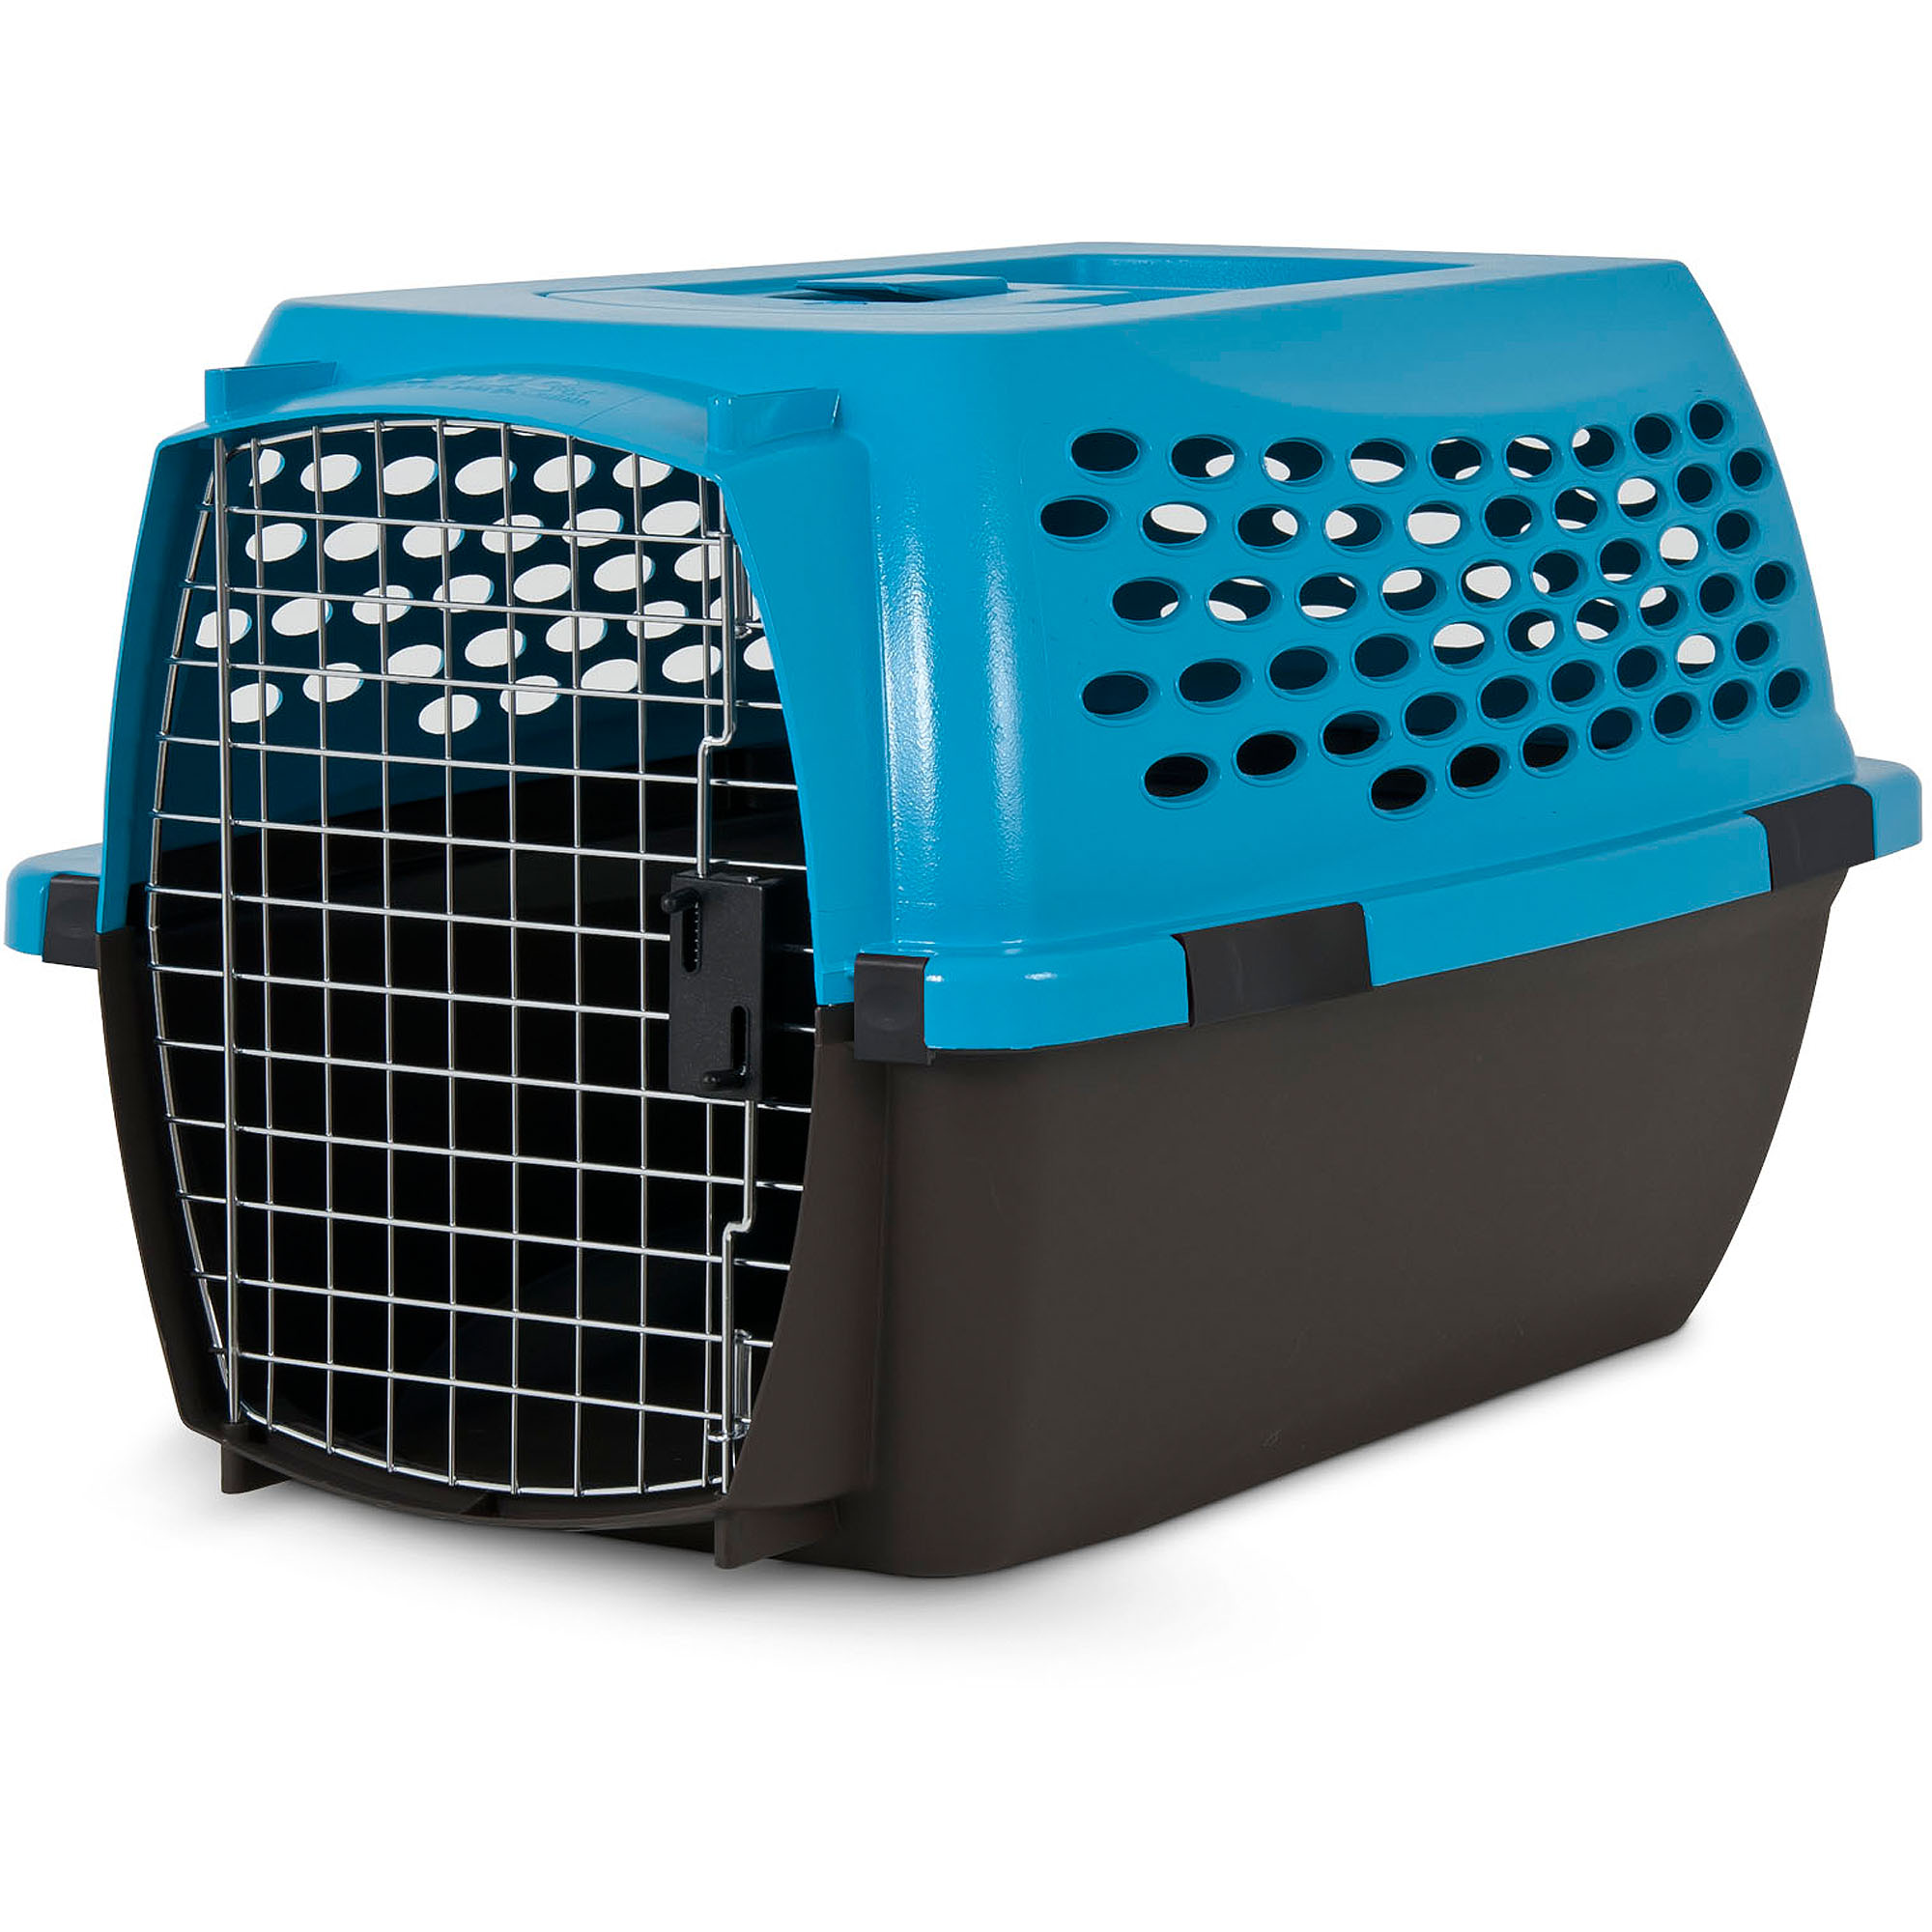 "Doskocil 23"" Pet Taxi, Up to 15 Lbs"